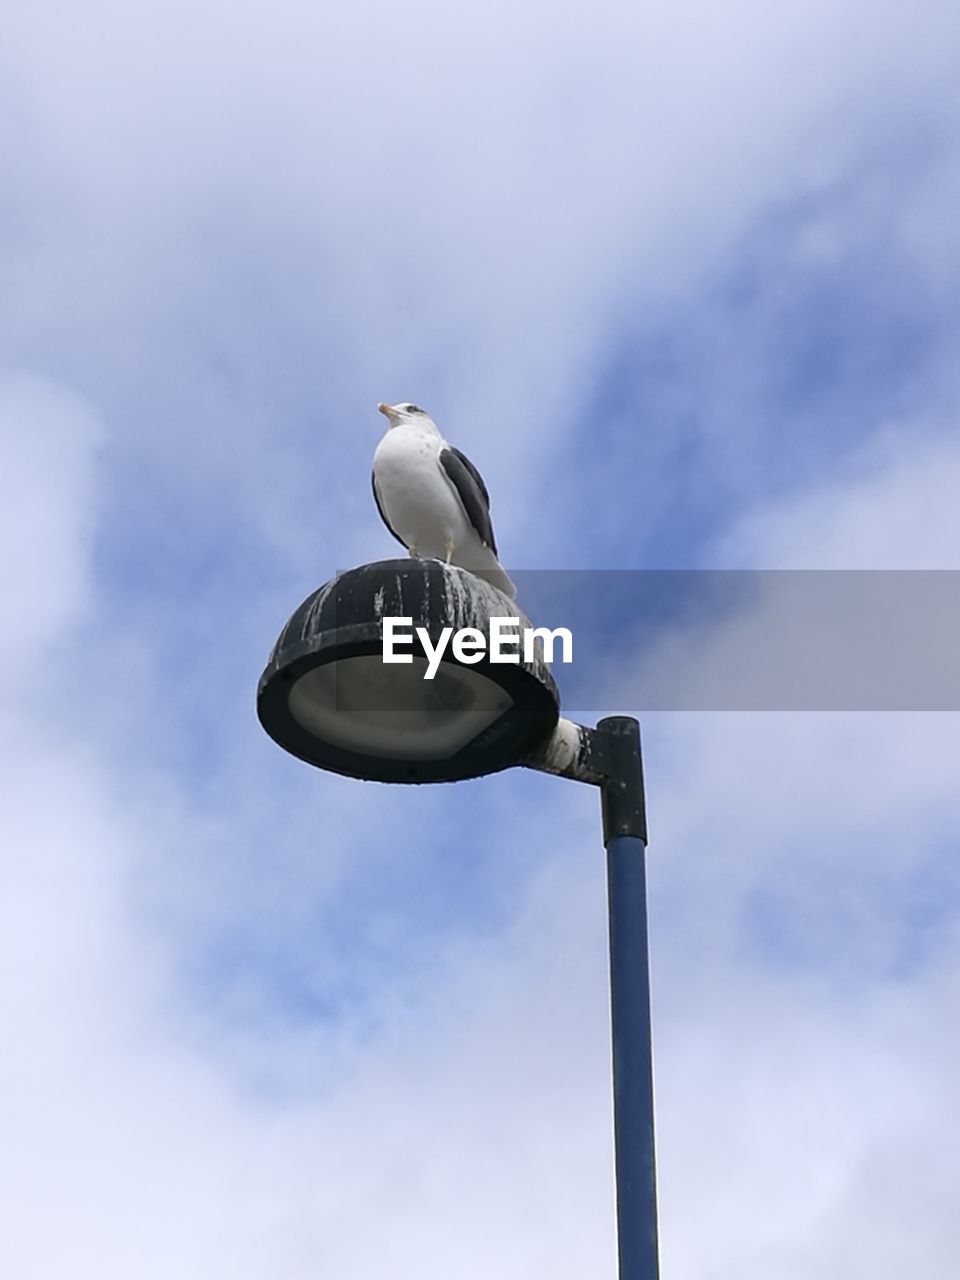 cloud - sky, low angle view, sky, bird, vertebrate, animal wildlife, animals in the wild, animal themes, animal, one animal, perching, street light, street, lighting equipment, day, no people, nature, seagull, outdoors, technology, electrical equipment